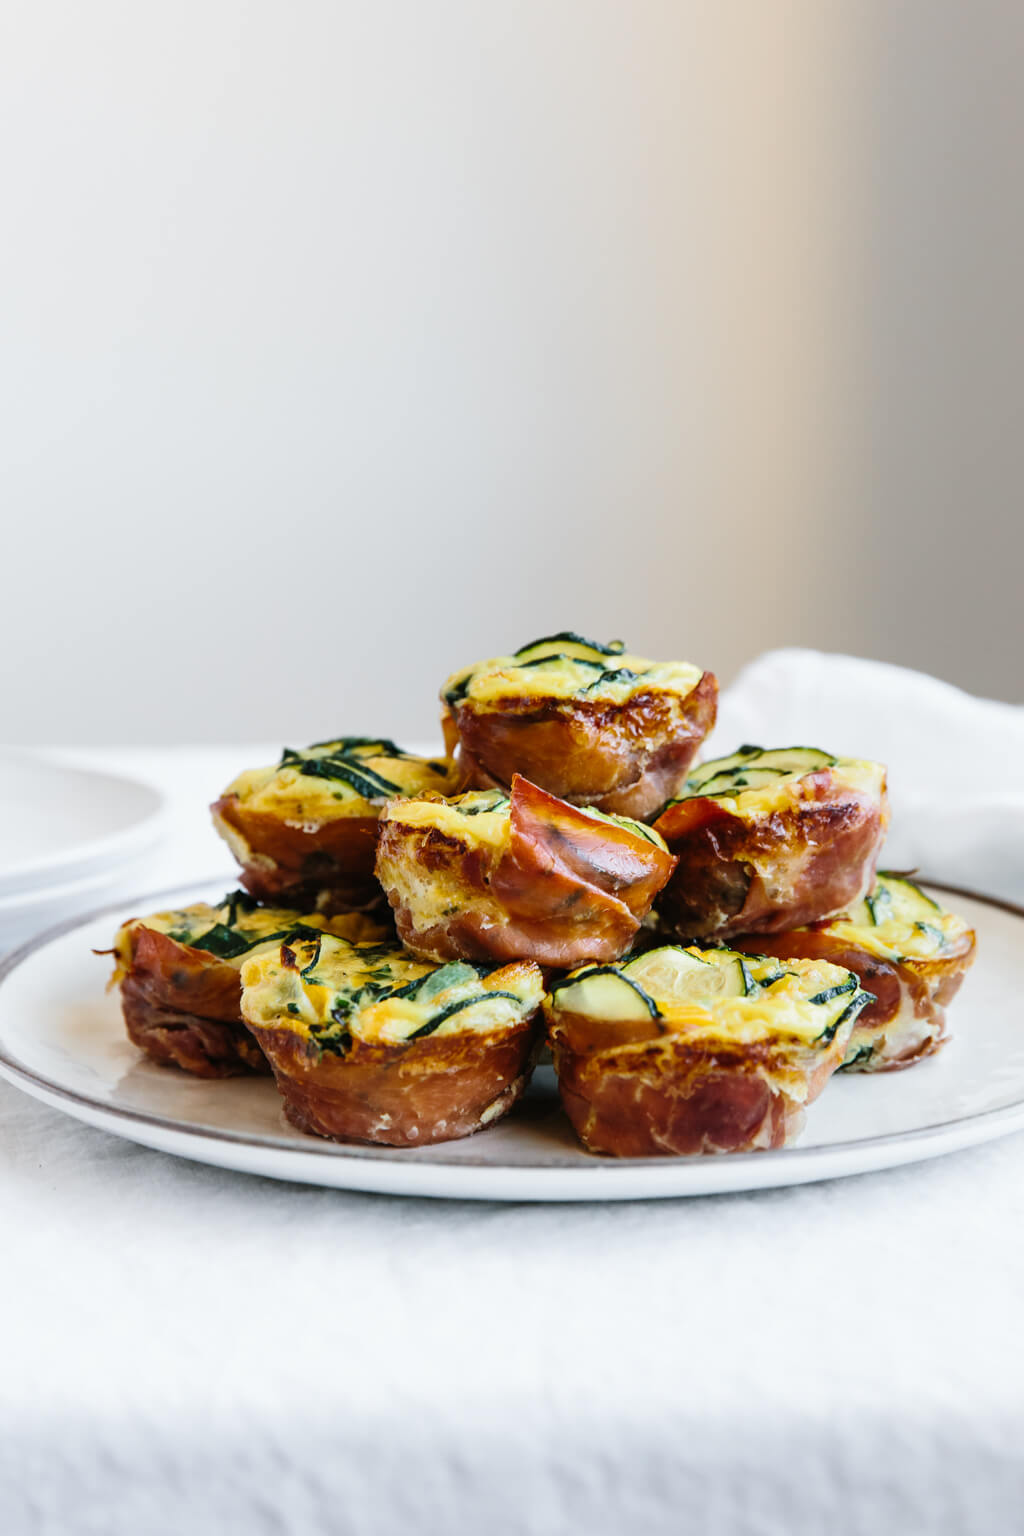 Stack of egg muffins on a plate